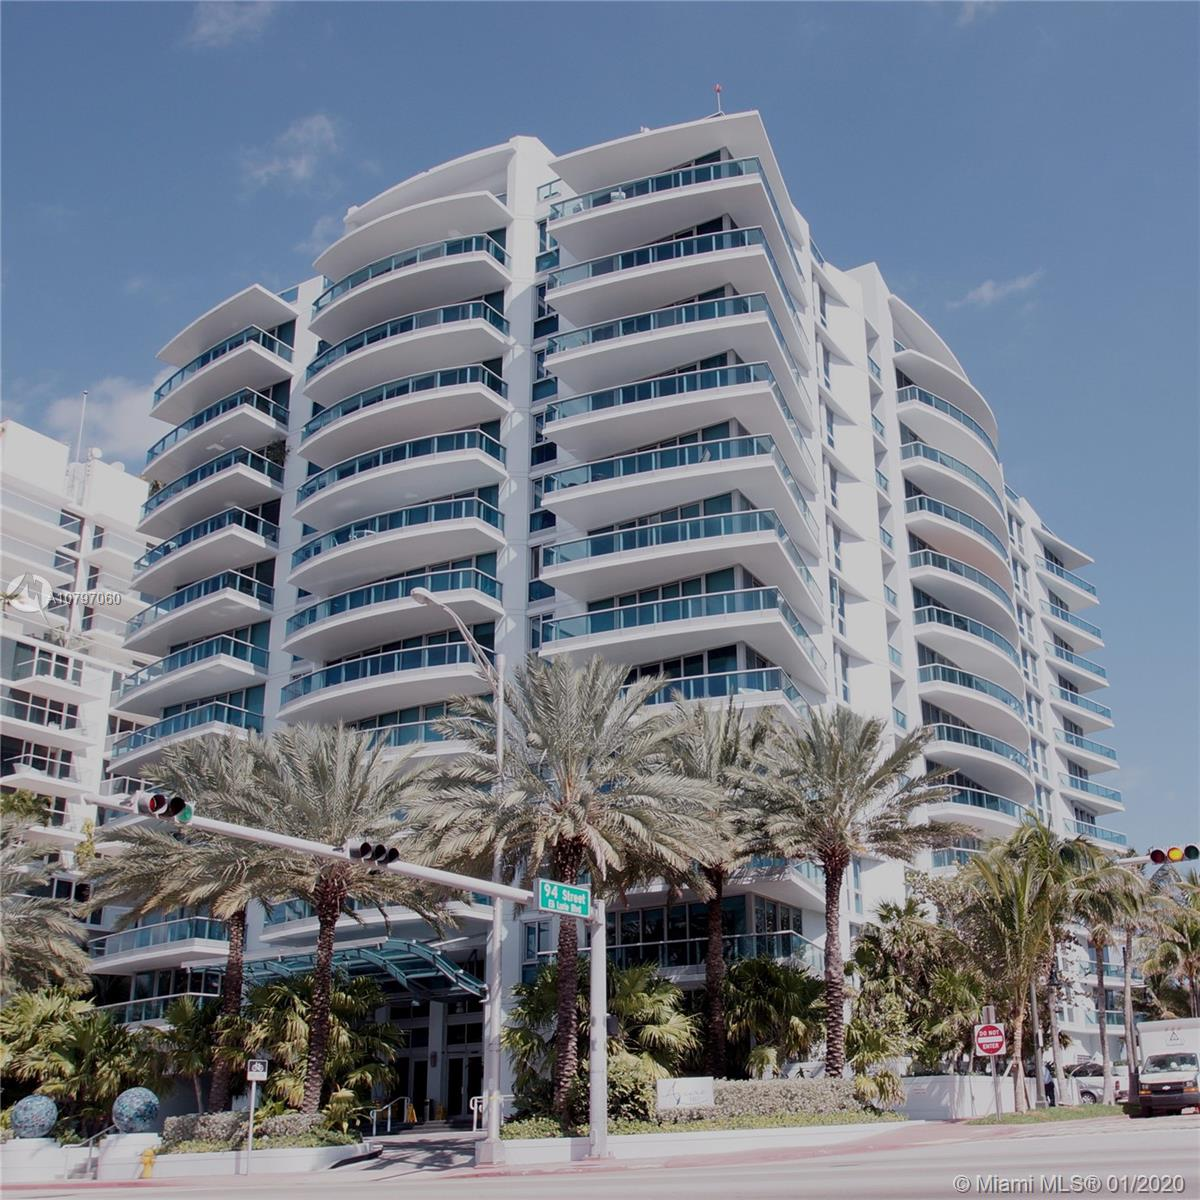 9401 Collins Ave # 1002, Surfside, Florida 33154, 3 Bedrooms Bedrooms, ,3 BathroomsBathrooms,Residential,For Sale,9401 Collins Ave # 1002,A10797060